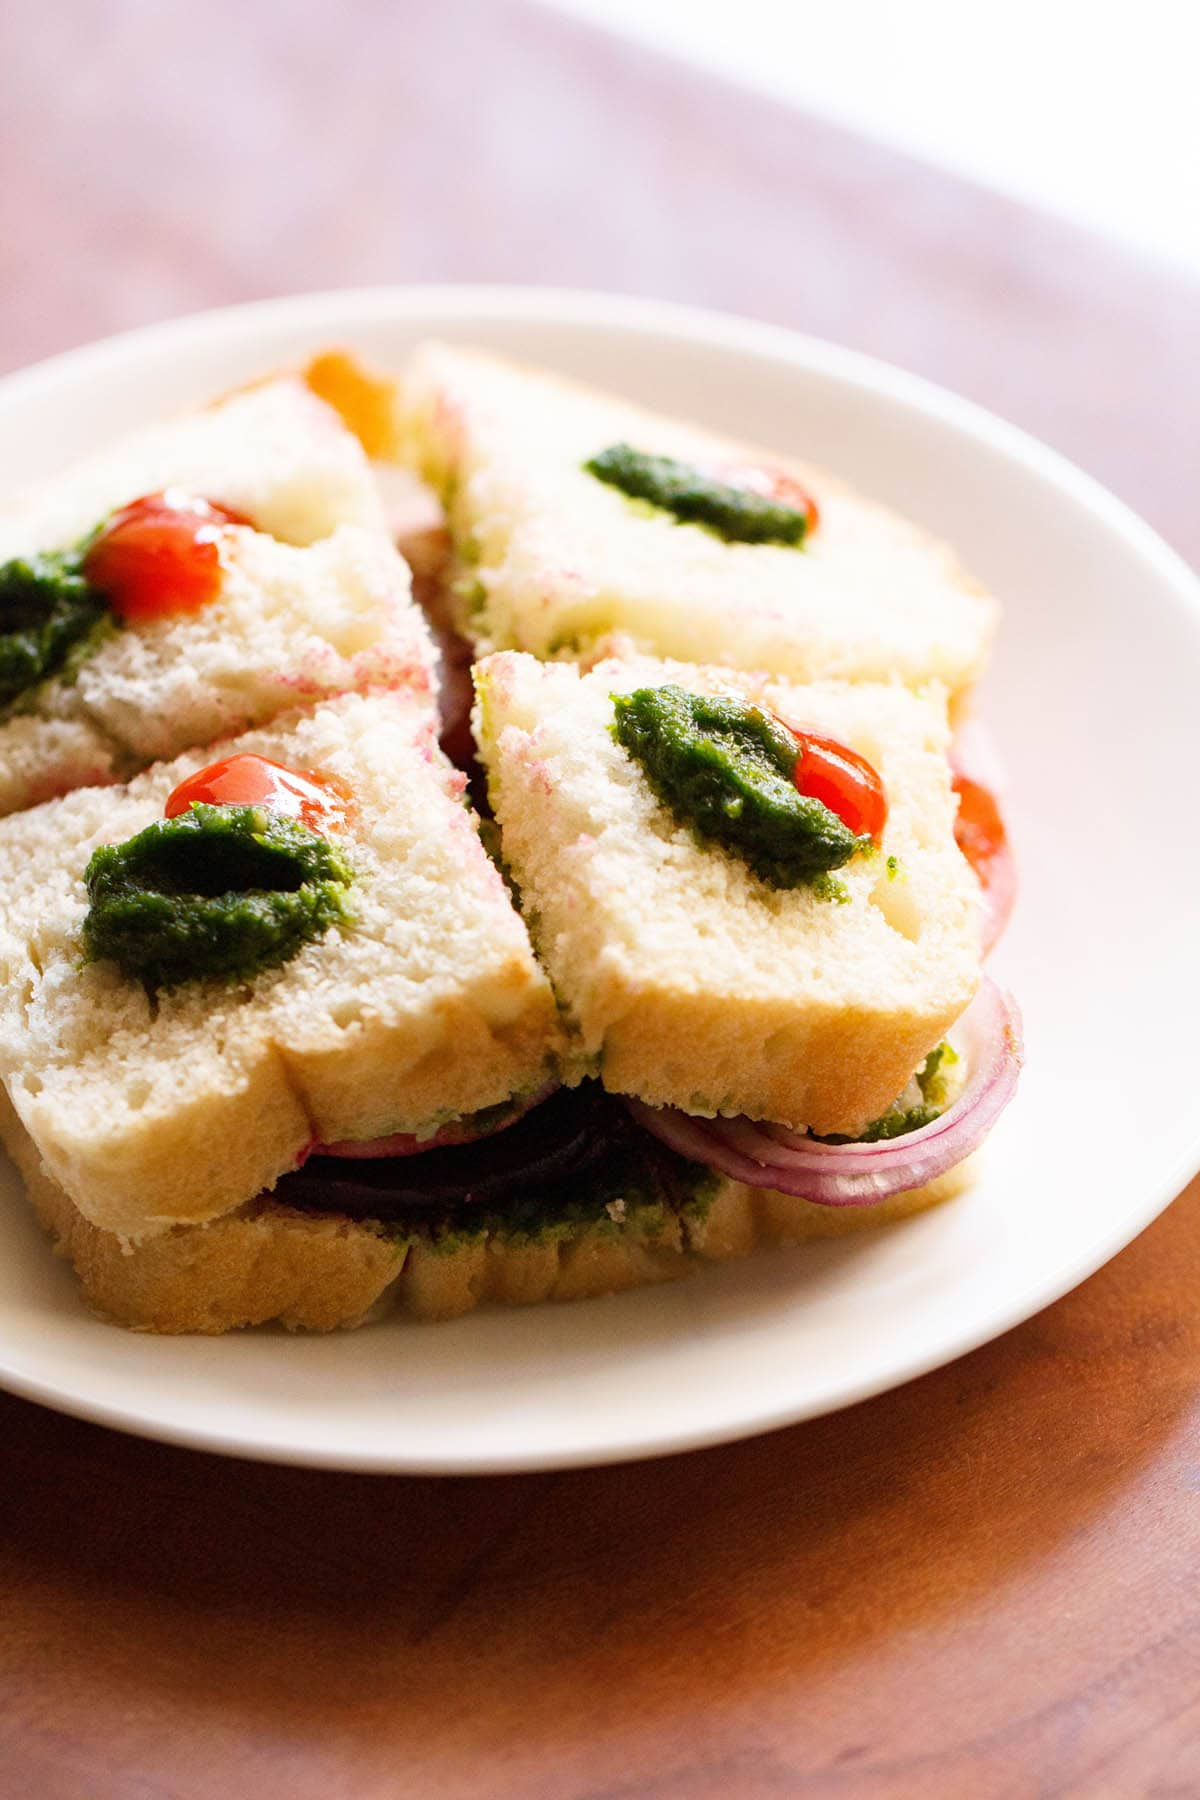 bombay sandwich dotted with green sauce and ketchup on a white plate